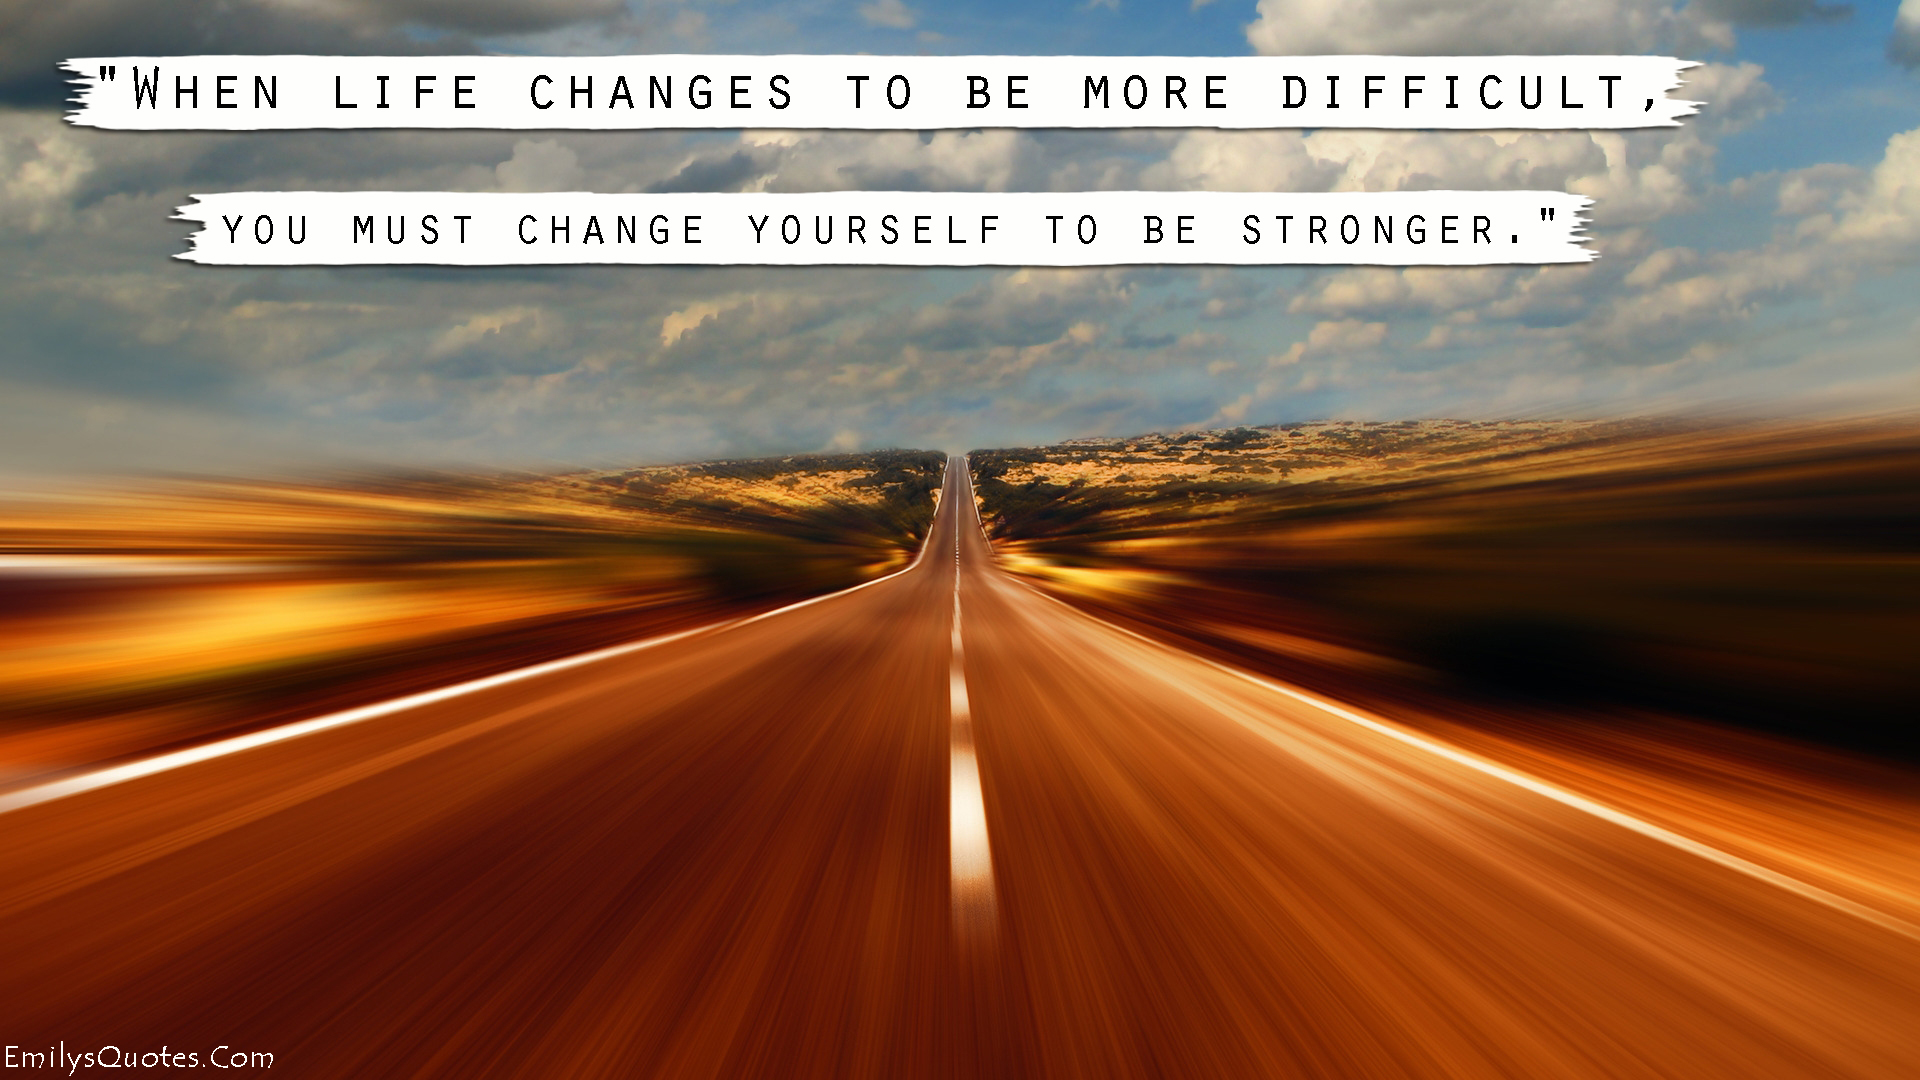 Quotes On Changes In Life When Life Changes To Be More Difficult You Must Change Yourself